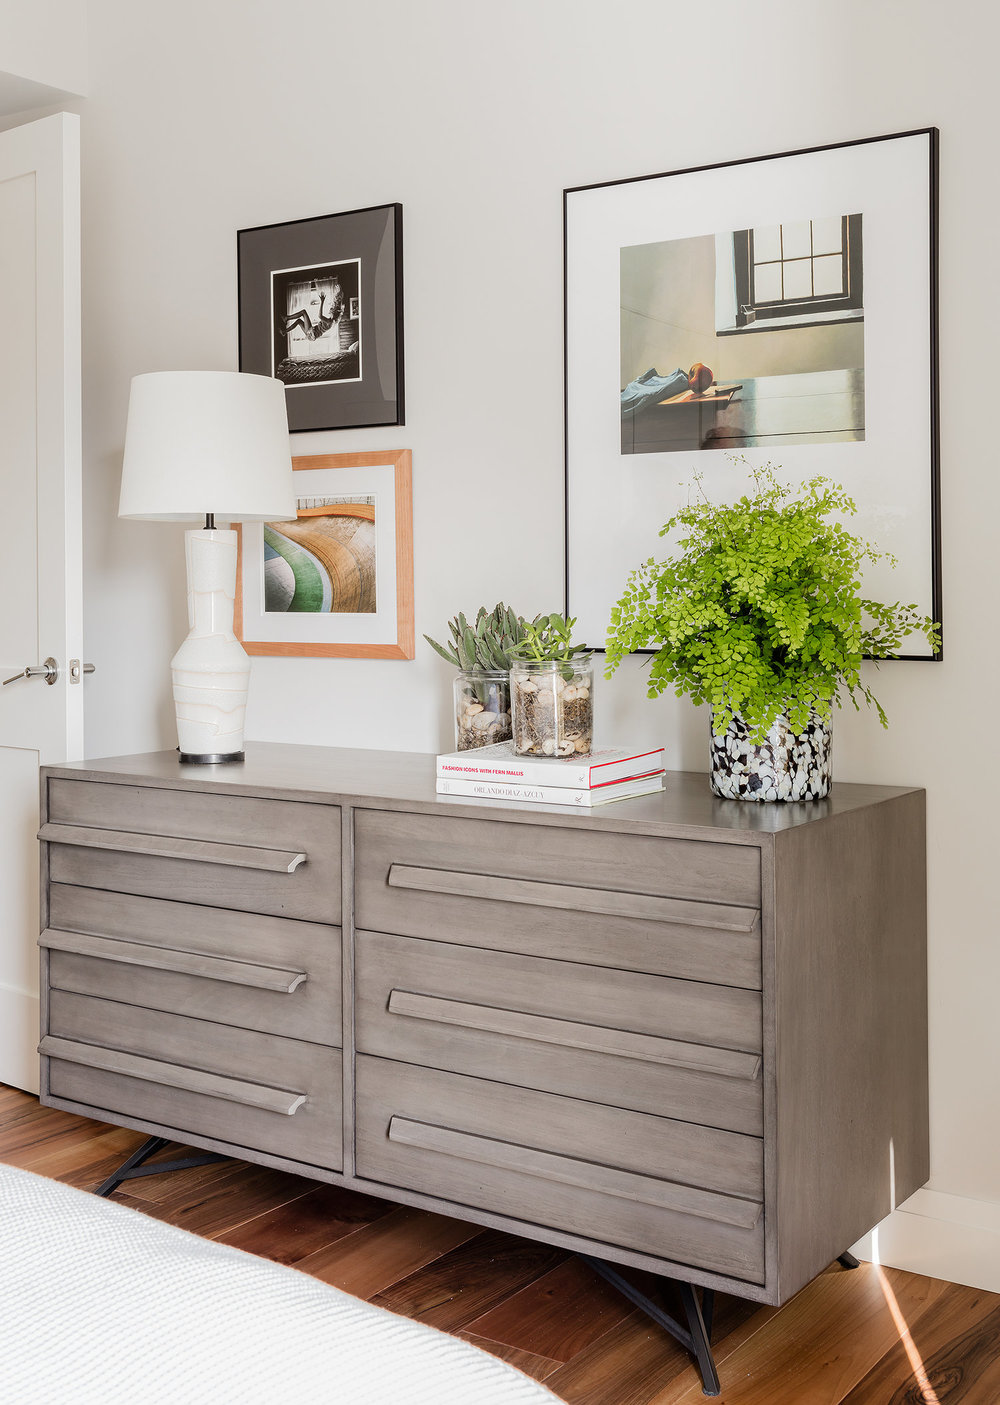 pier-4-model-guest-bed-dresser-hudson-interior-designs.jpg